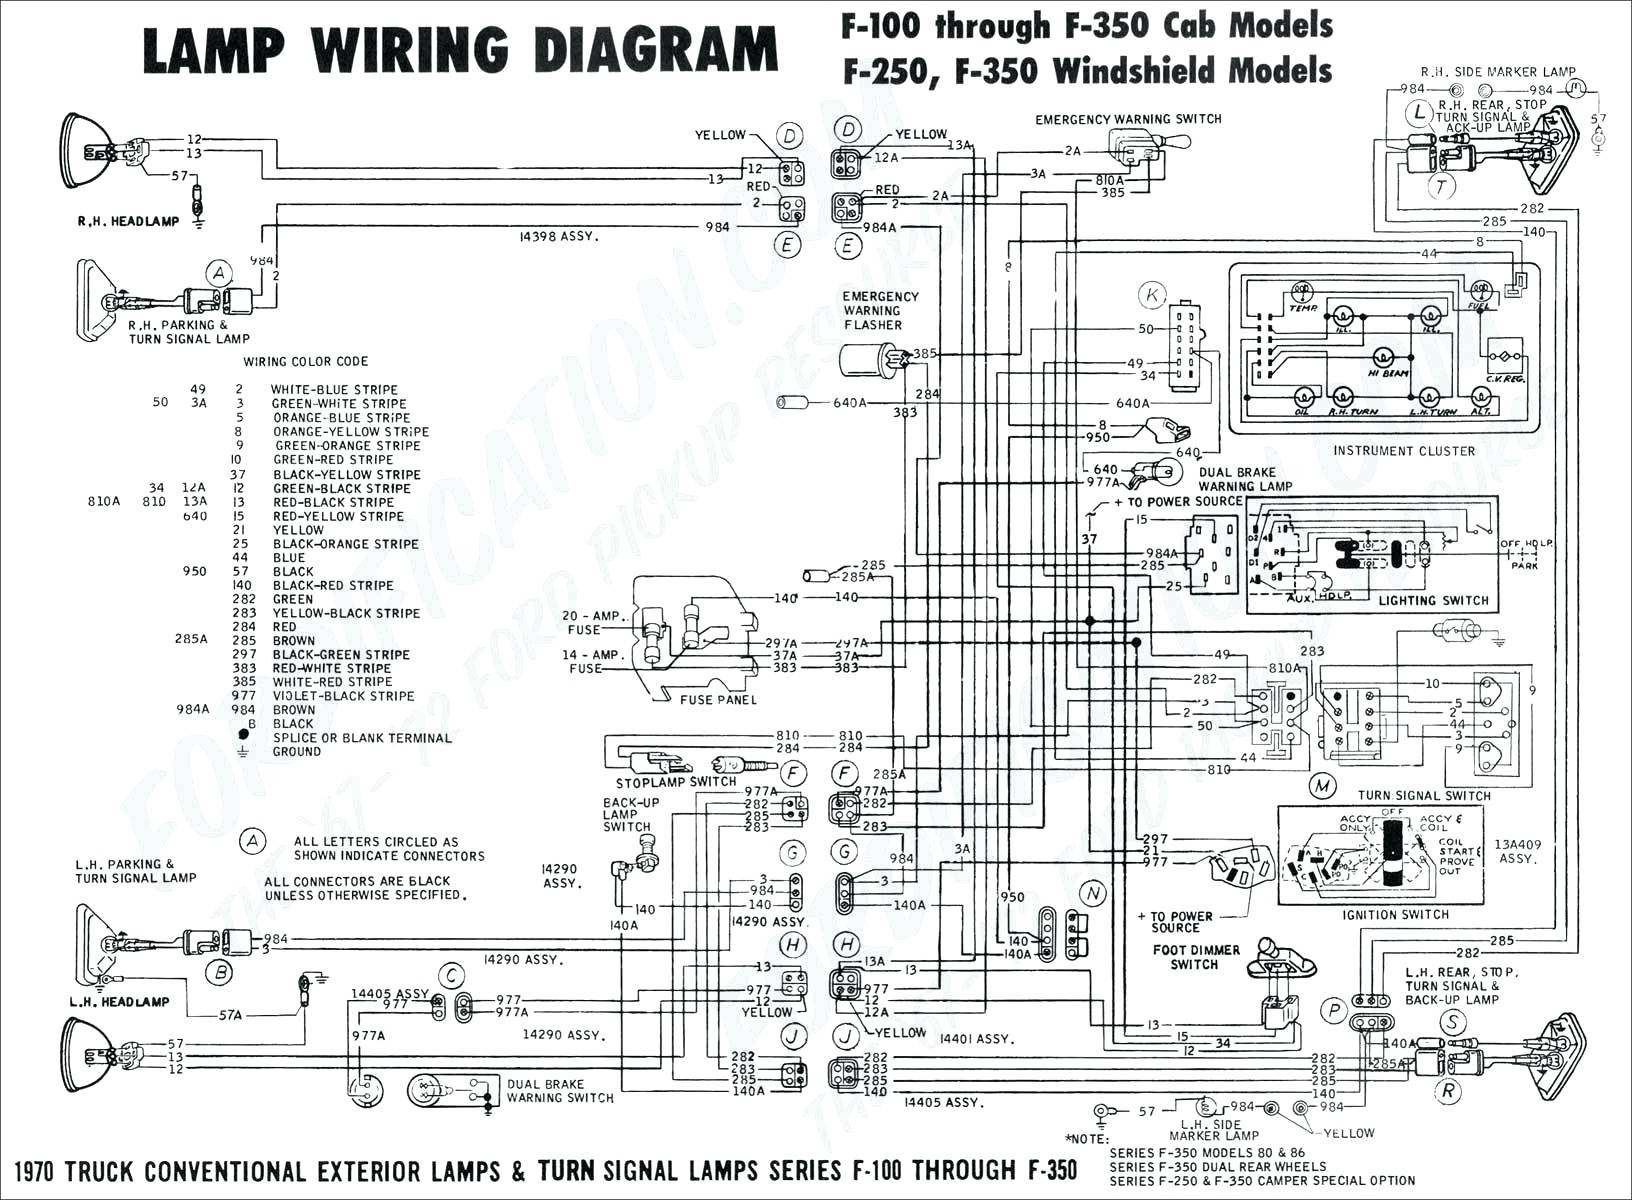 80a3 Jeep Fuse Diagram